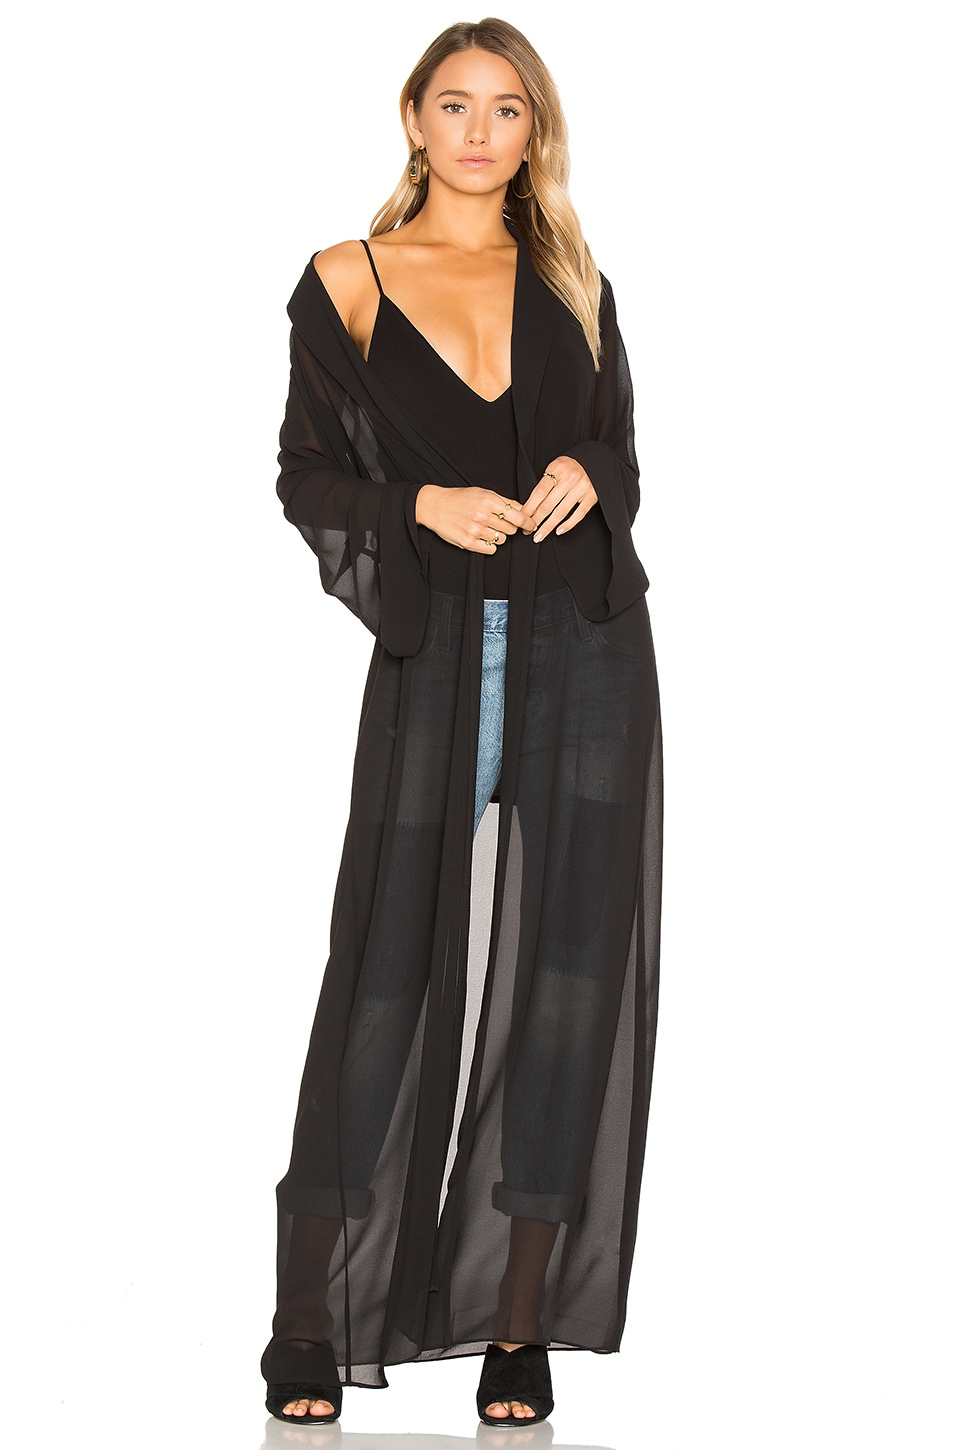 House of Harlow 1960 x REVOLVE Ruby Jacket in Black